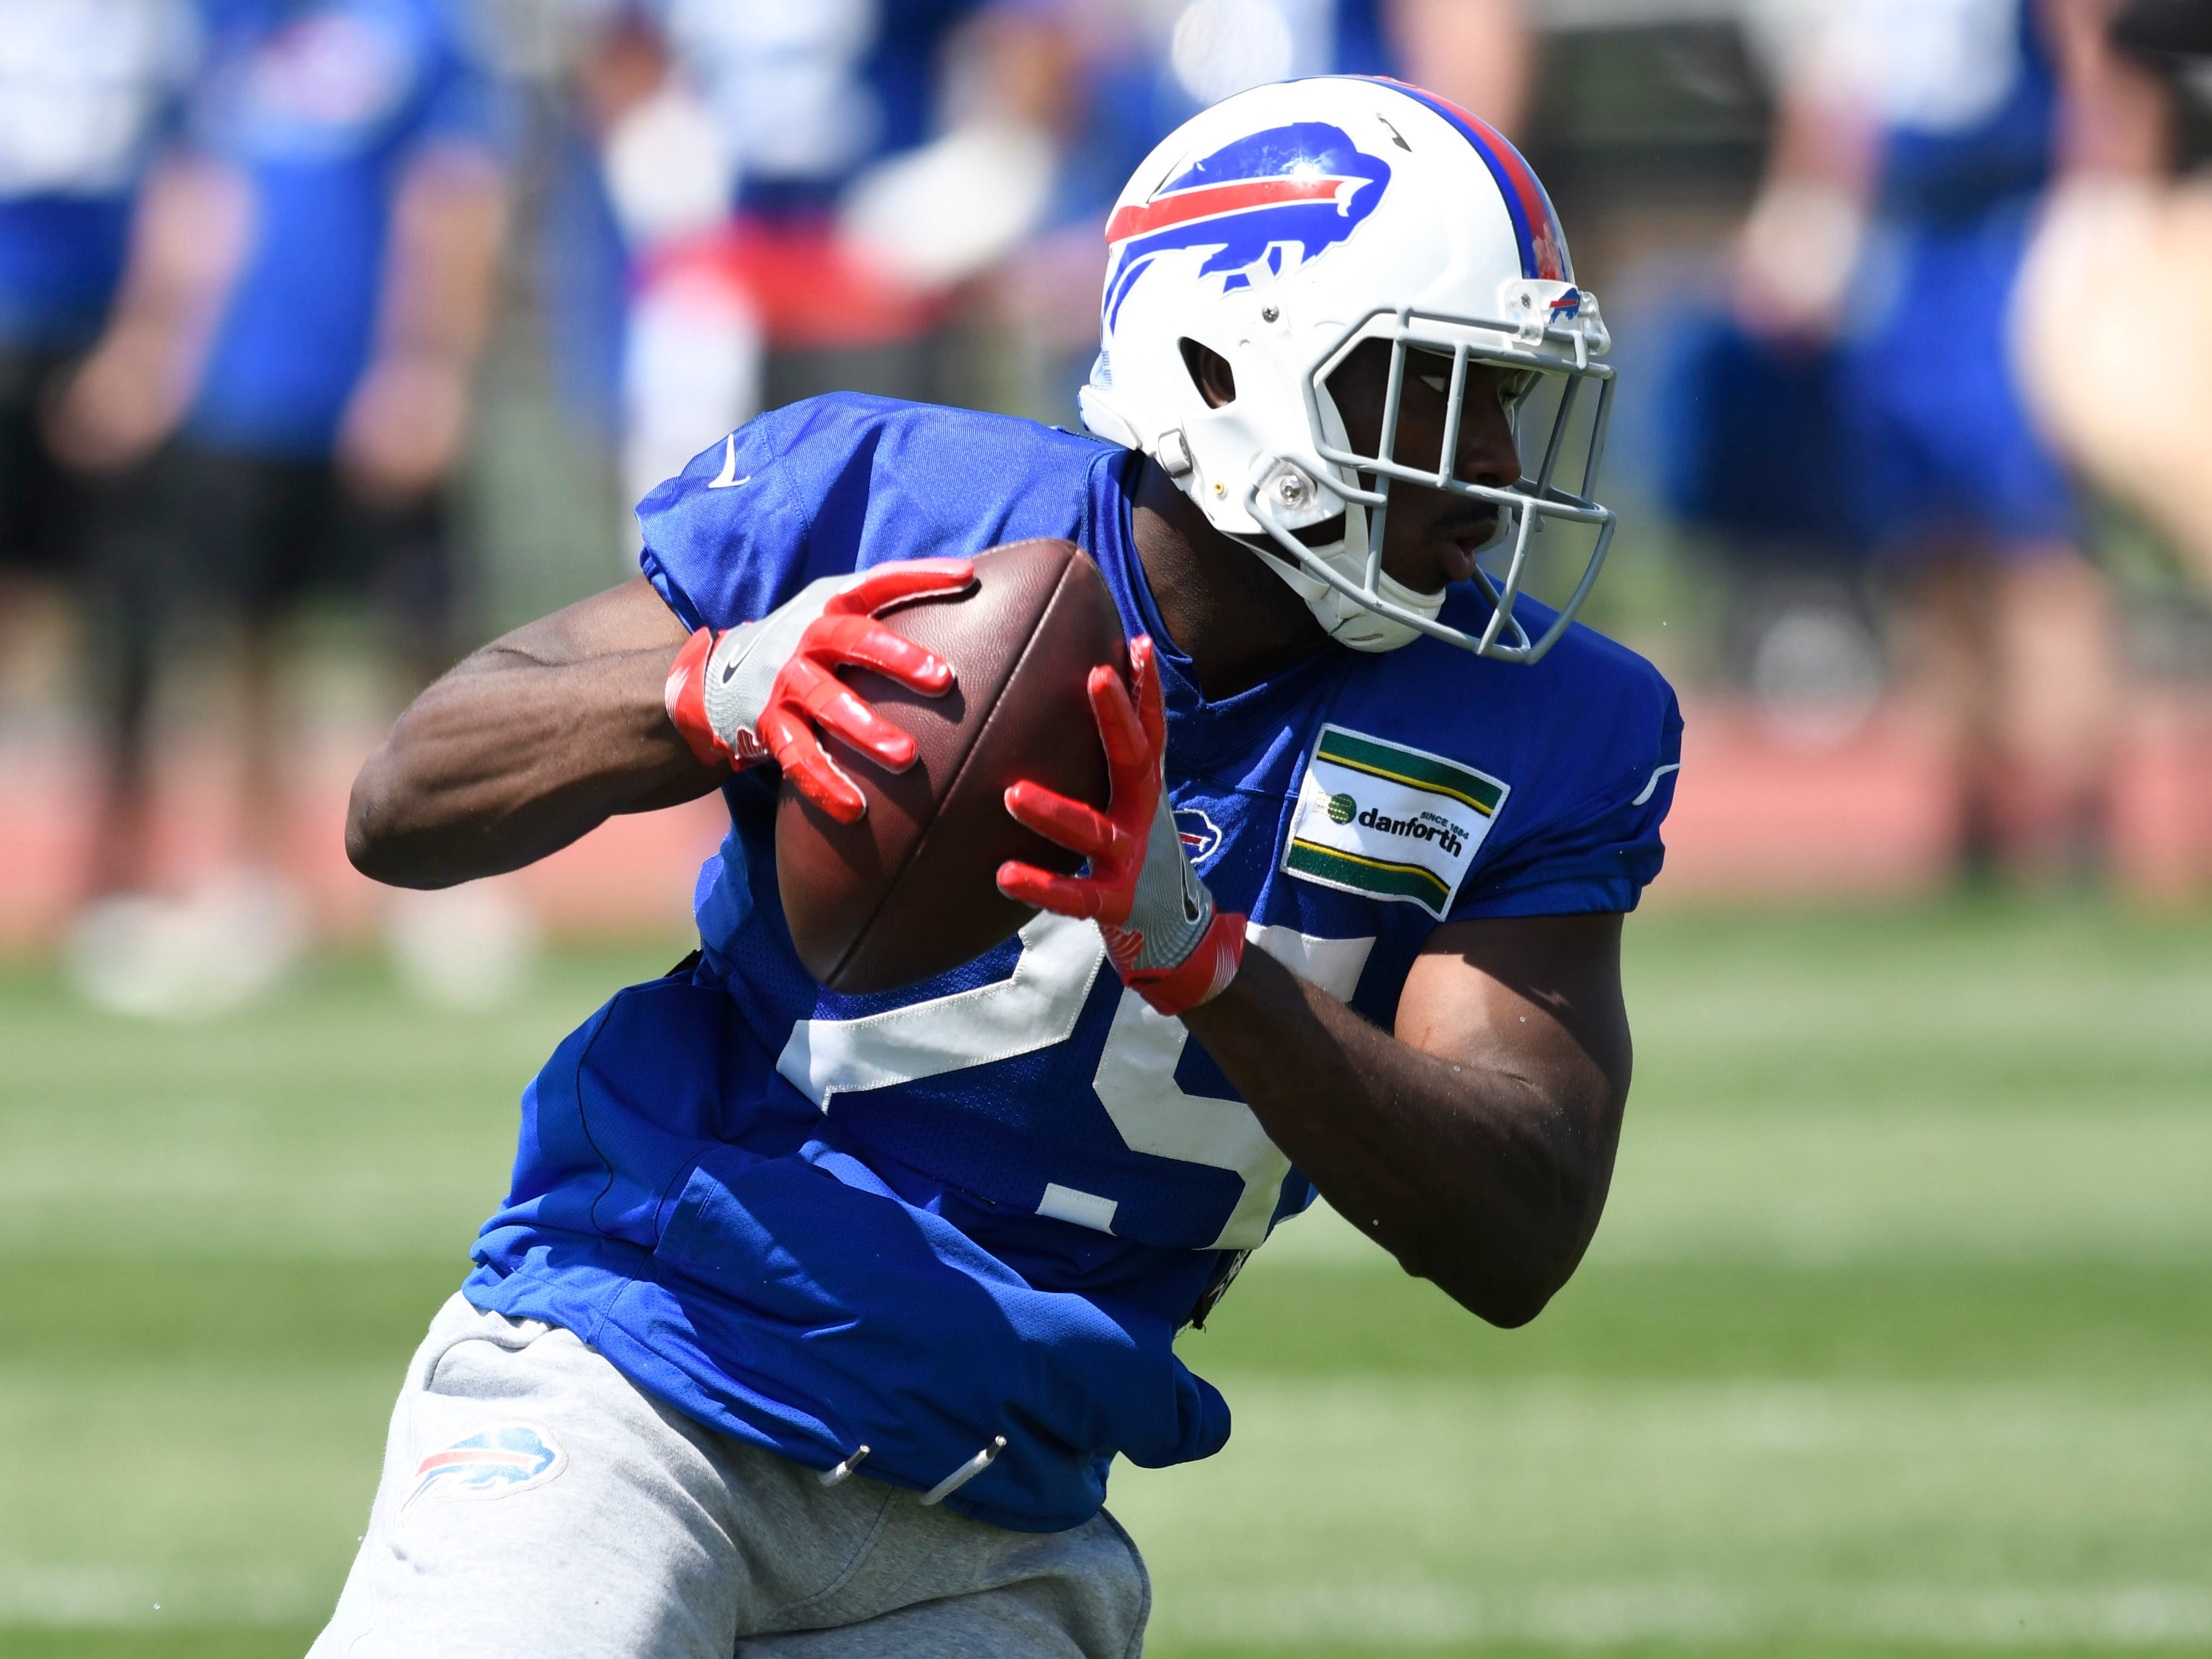 32. Bills (30): LeSean McCoy doesn't want to be distraction to what seems an underpowered offense. His opening camp press conference shows he can't really avoid it for now, though.